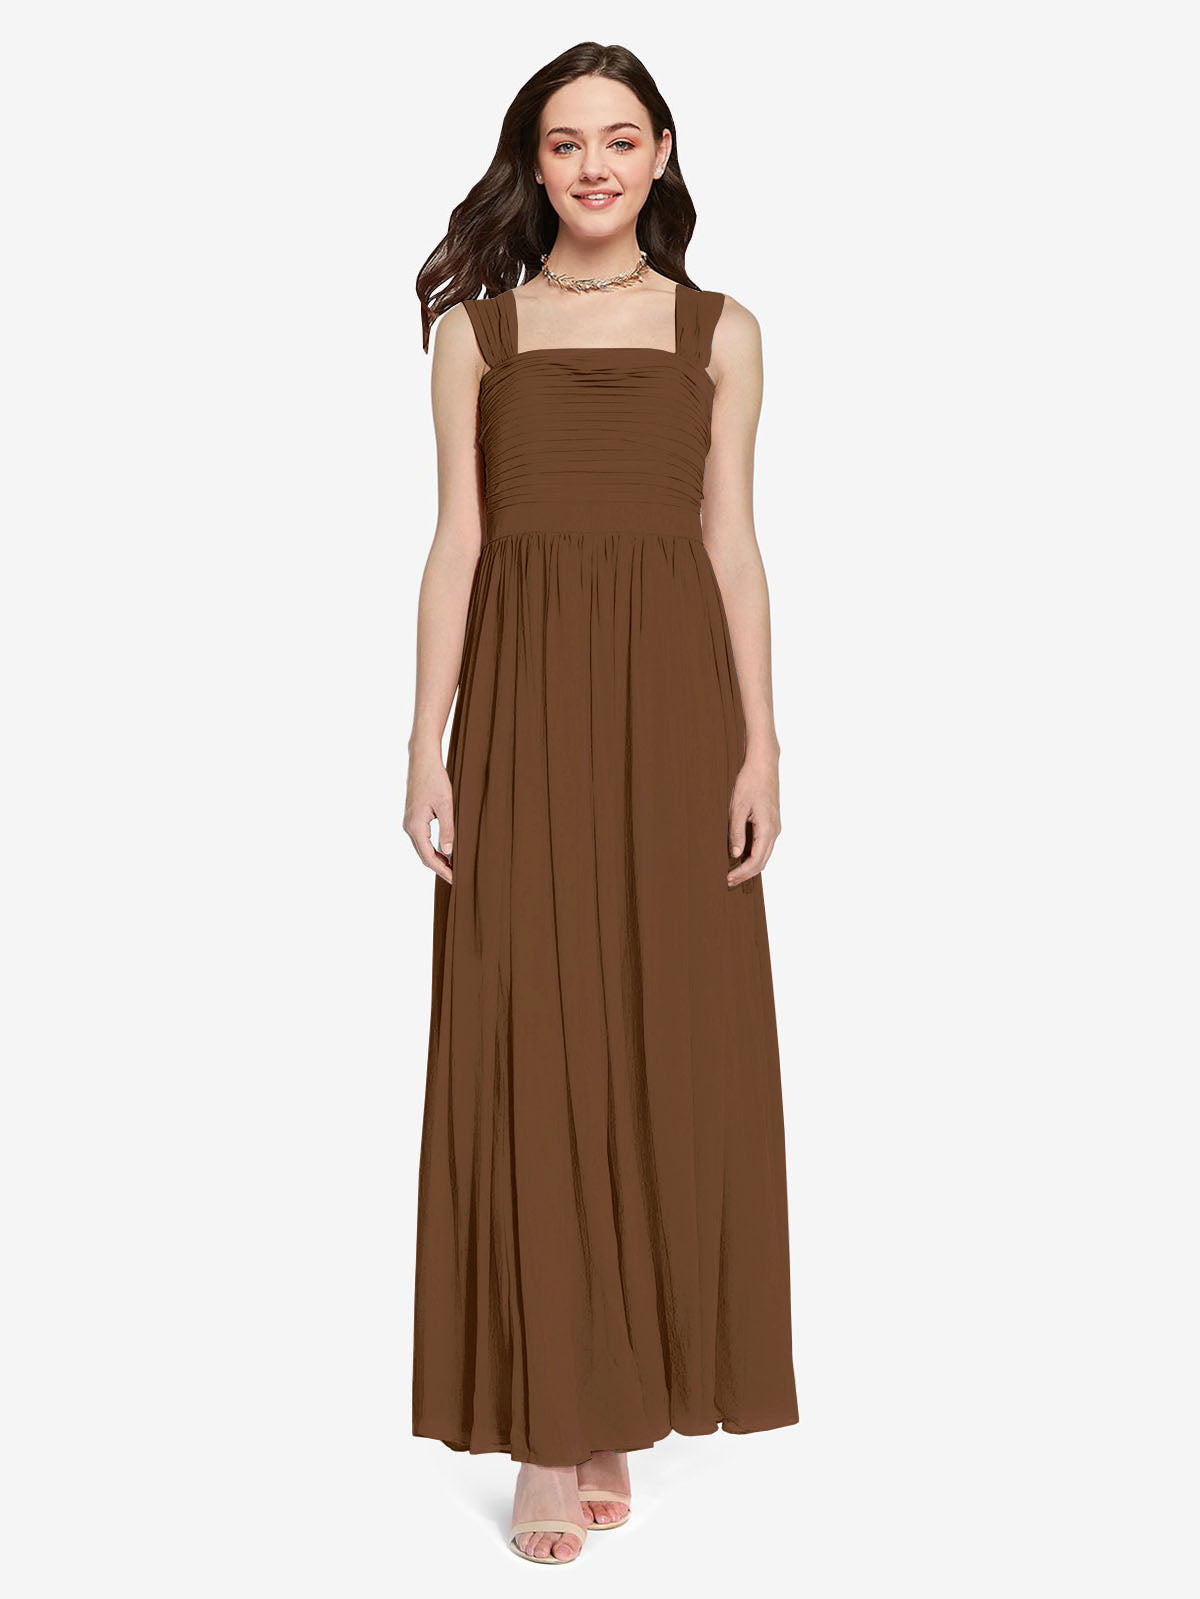 Long A-Line Square Sleeveless Brown Chiffon Bridesmaid Dress Aldridge